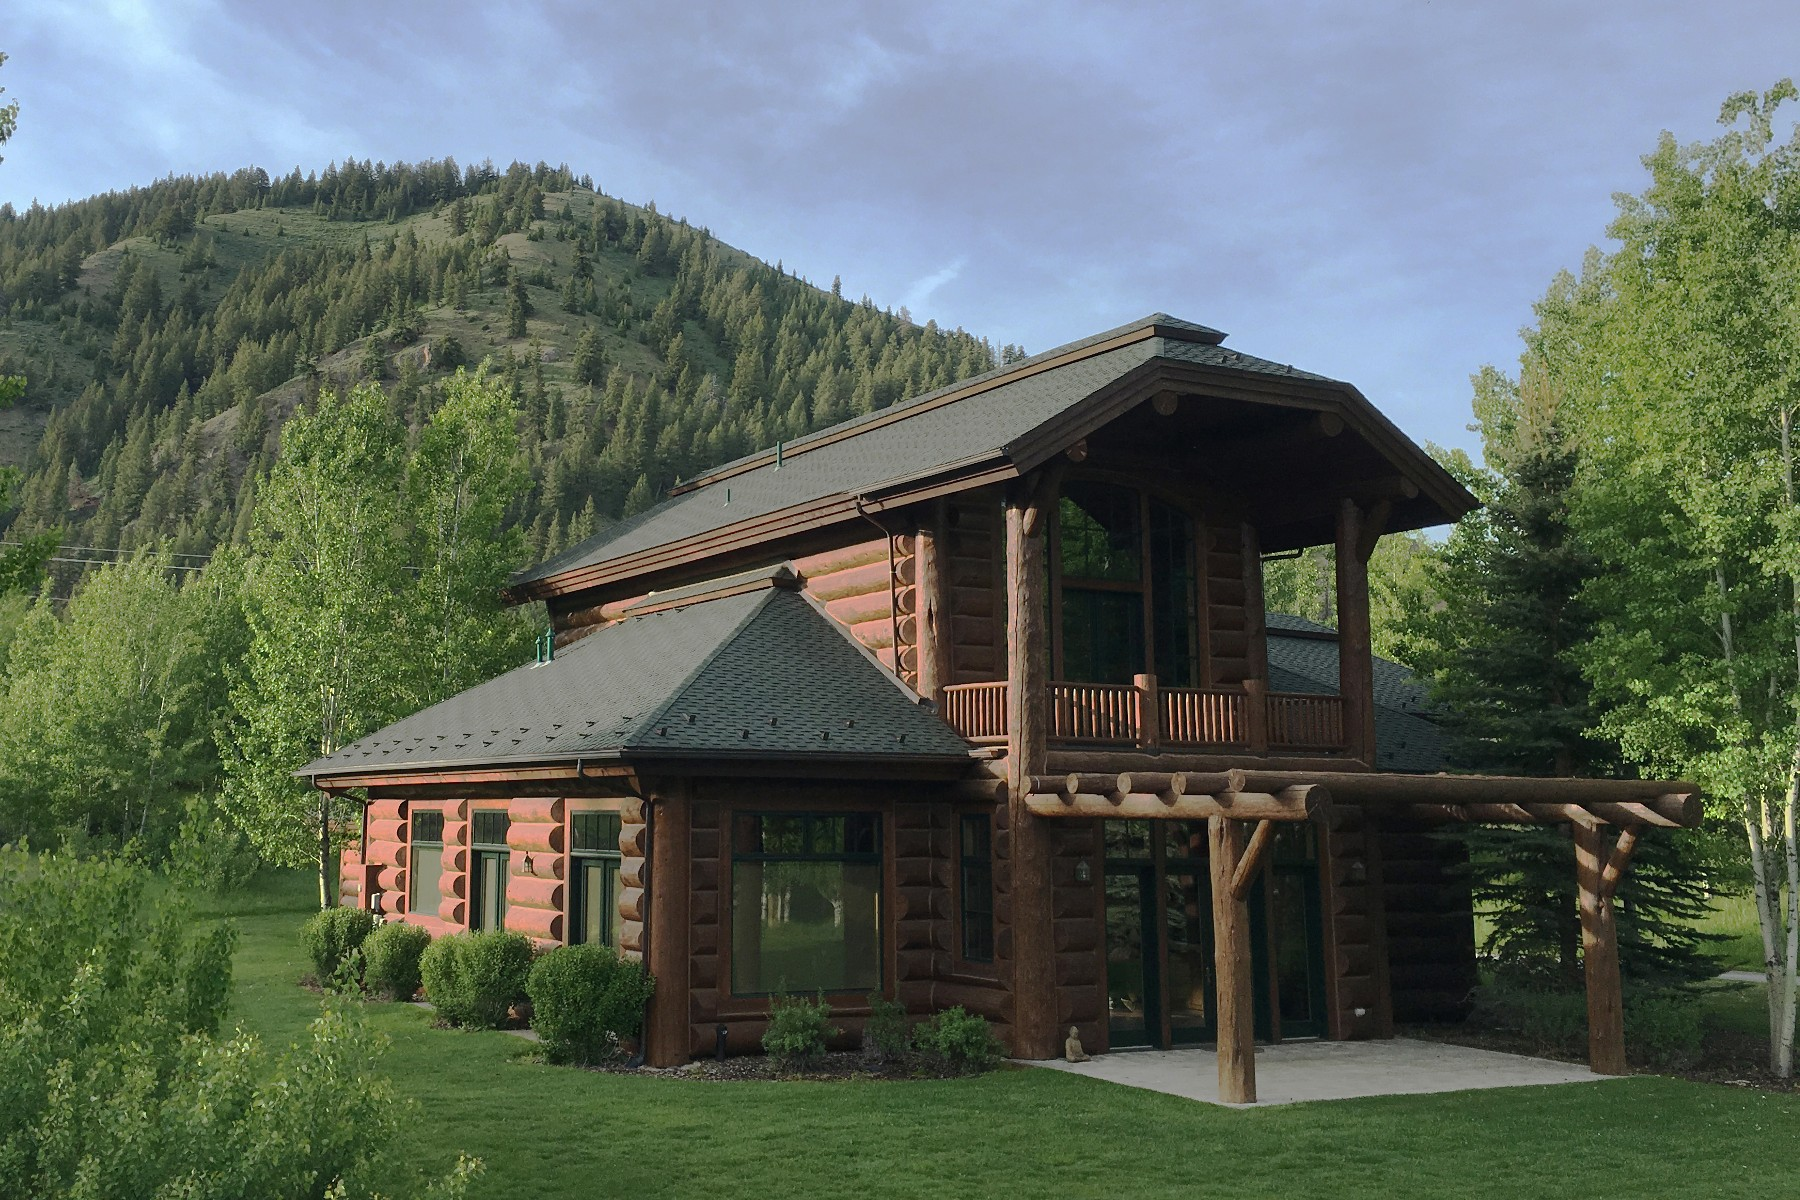 Single Family Home for Sale at A Gathering Place 80 River Sage Court Ketchum, Idaho 83340 United States